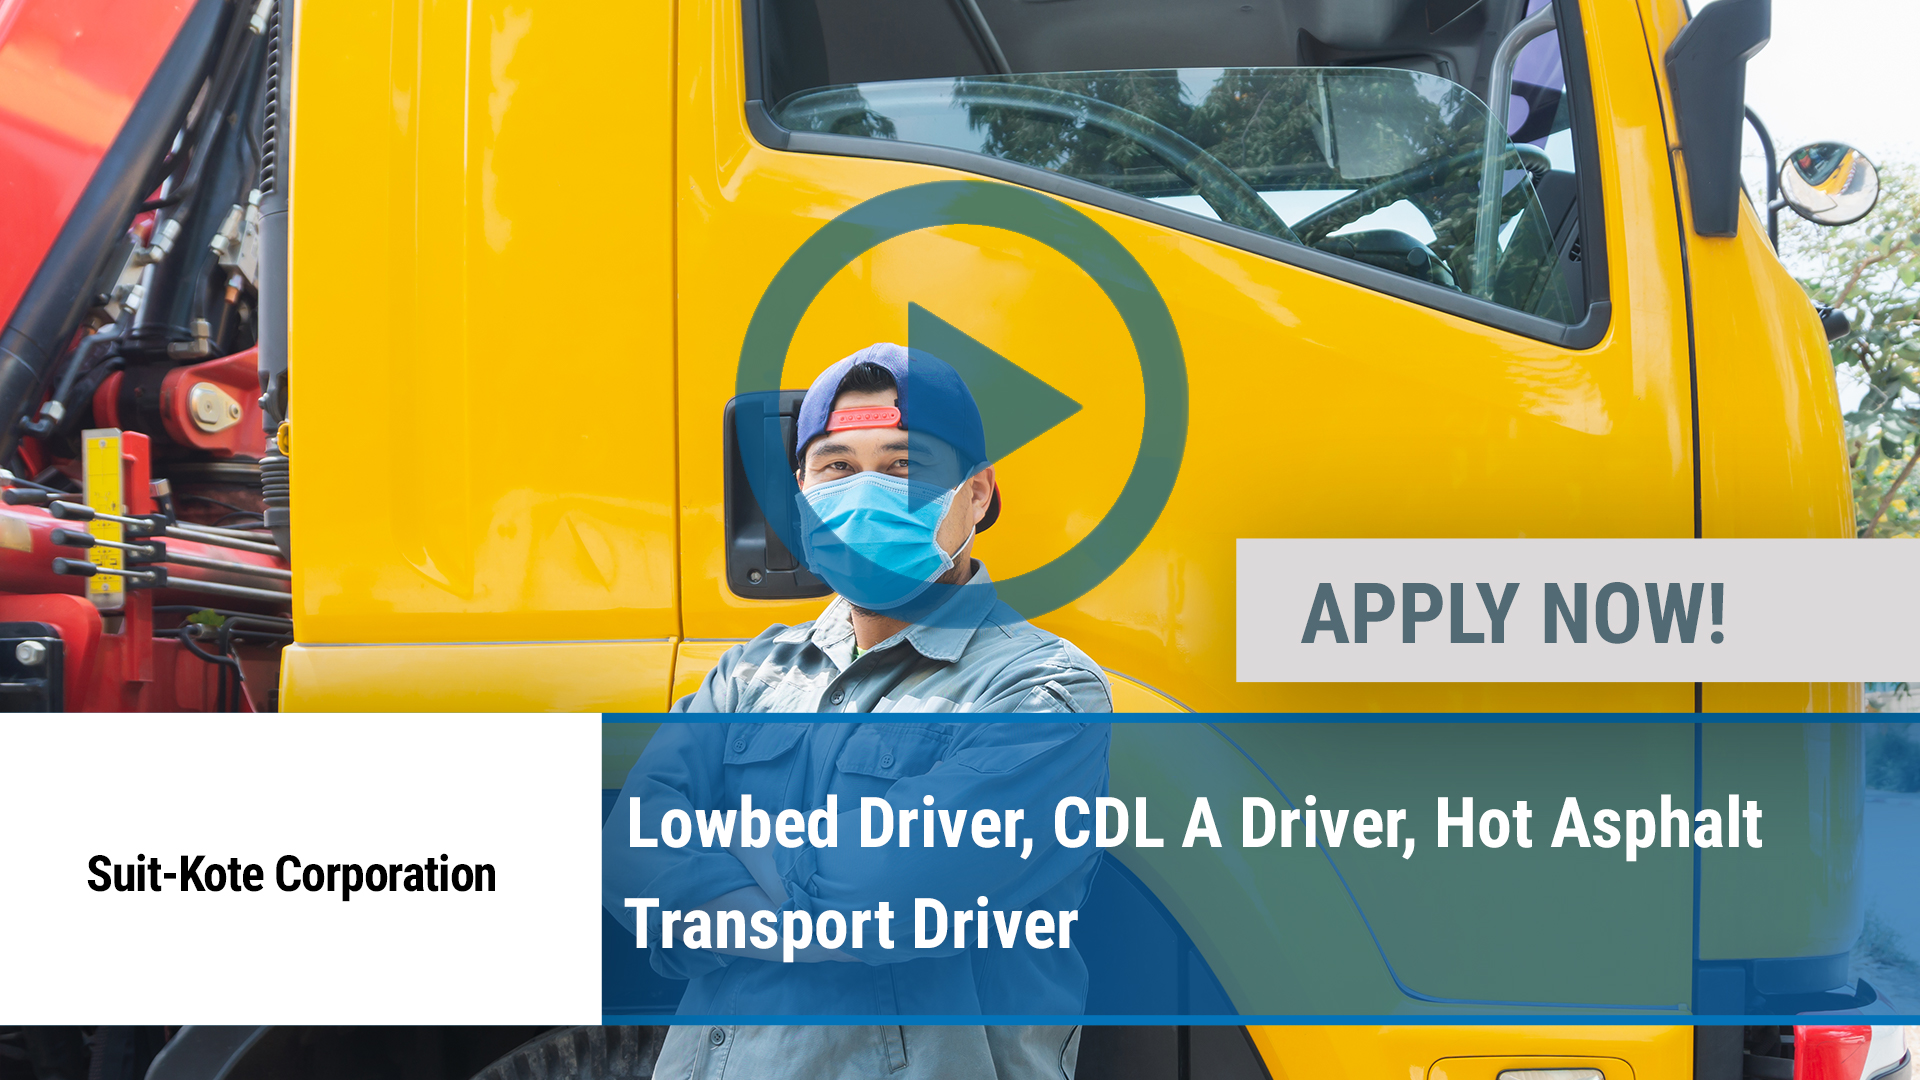 Watch our careers video for available job opening Lowbed Driver, CDL A Driver, Hot Asphalt Transpor in Preble, NY